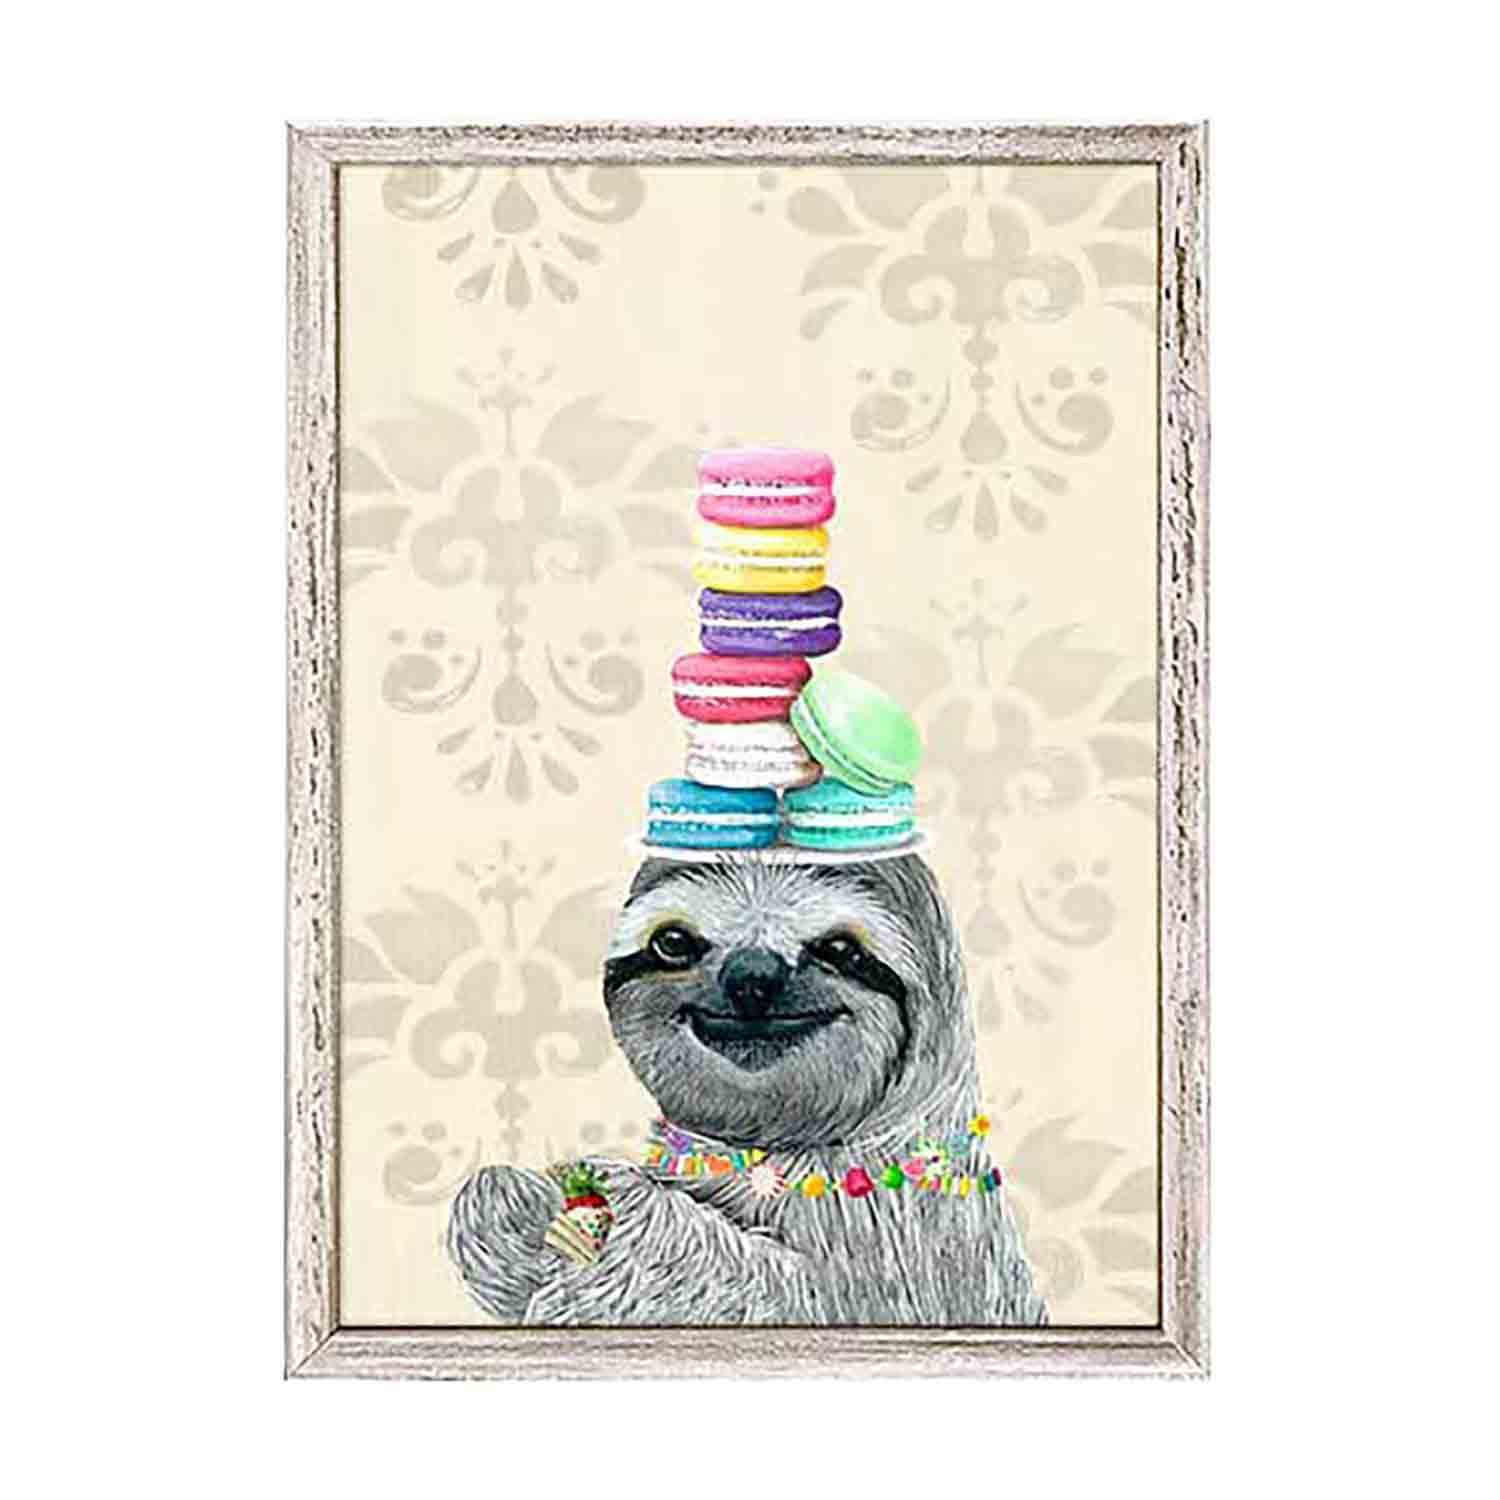 Cinema Snacks Sloth Mini Framed Canvas